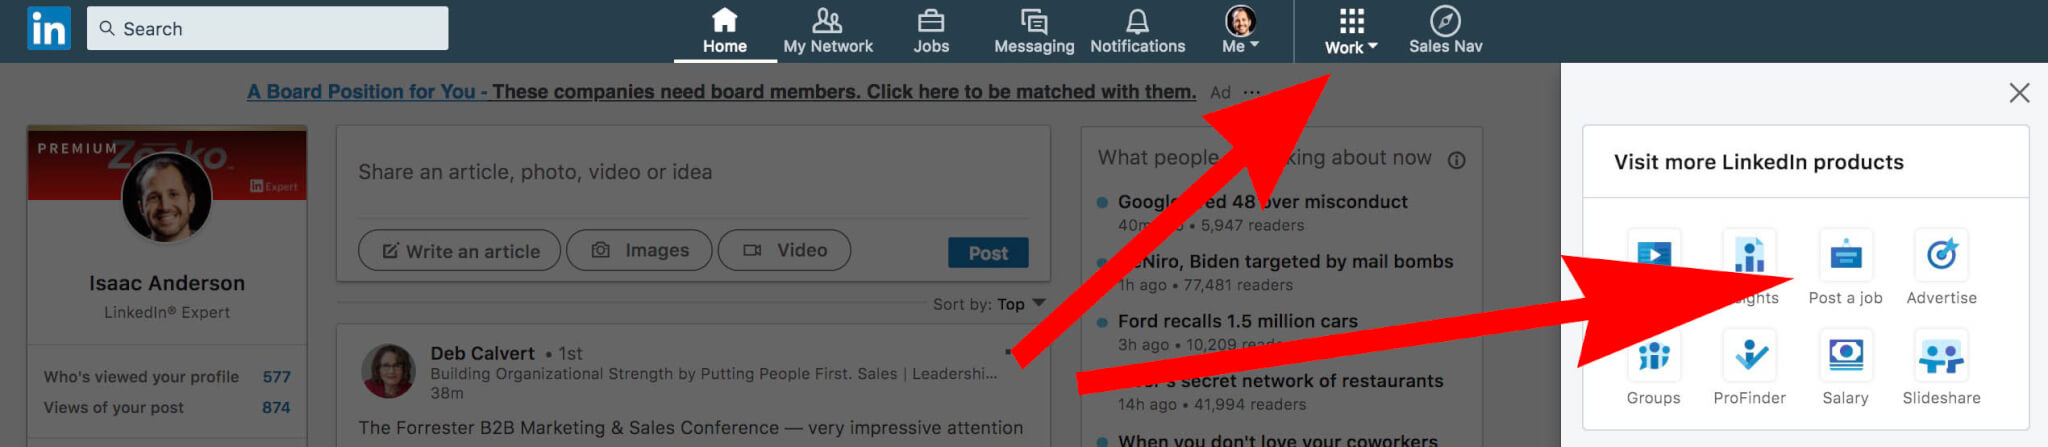 How to post a job on Linkedin - finding the post a job icon in Linkedin